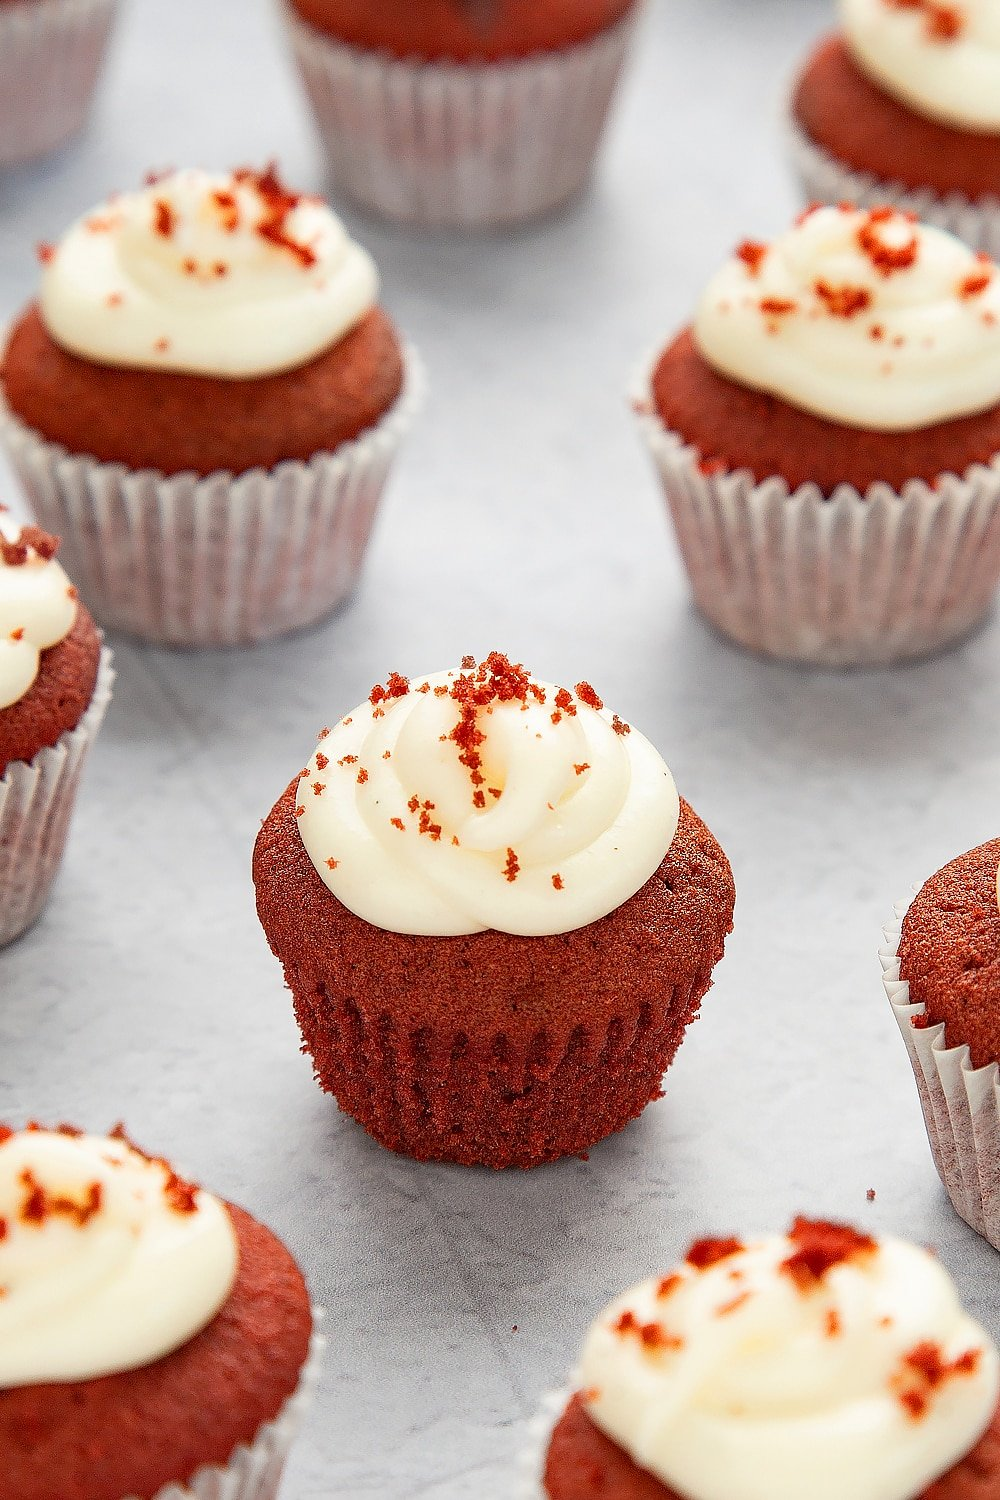 Mini red velvet cupcakes with cream cheese frosting unwrapped from it's case sat on a grey table top surrounded by additional cupcakes.